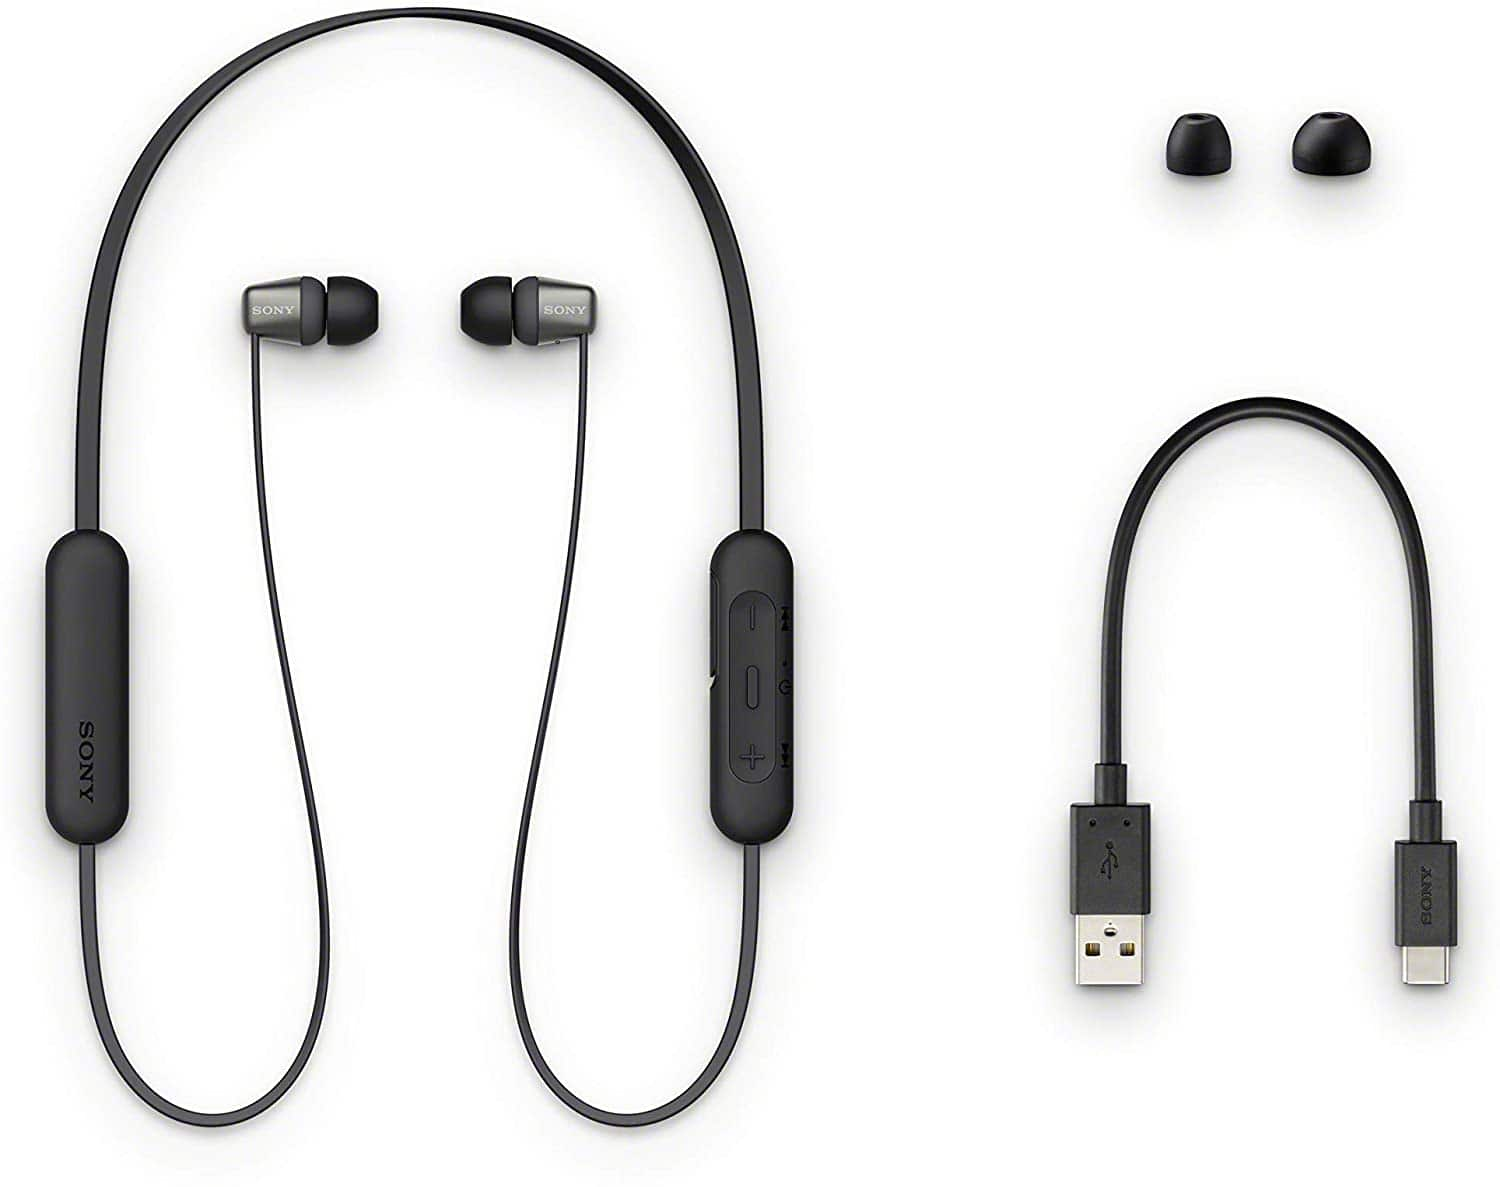 Sony Wireless in-Ear Headset/Headphones with Mic for Phone Call (WI-C310/All Colors) $18